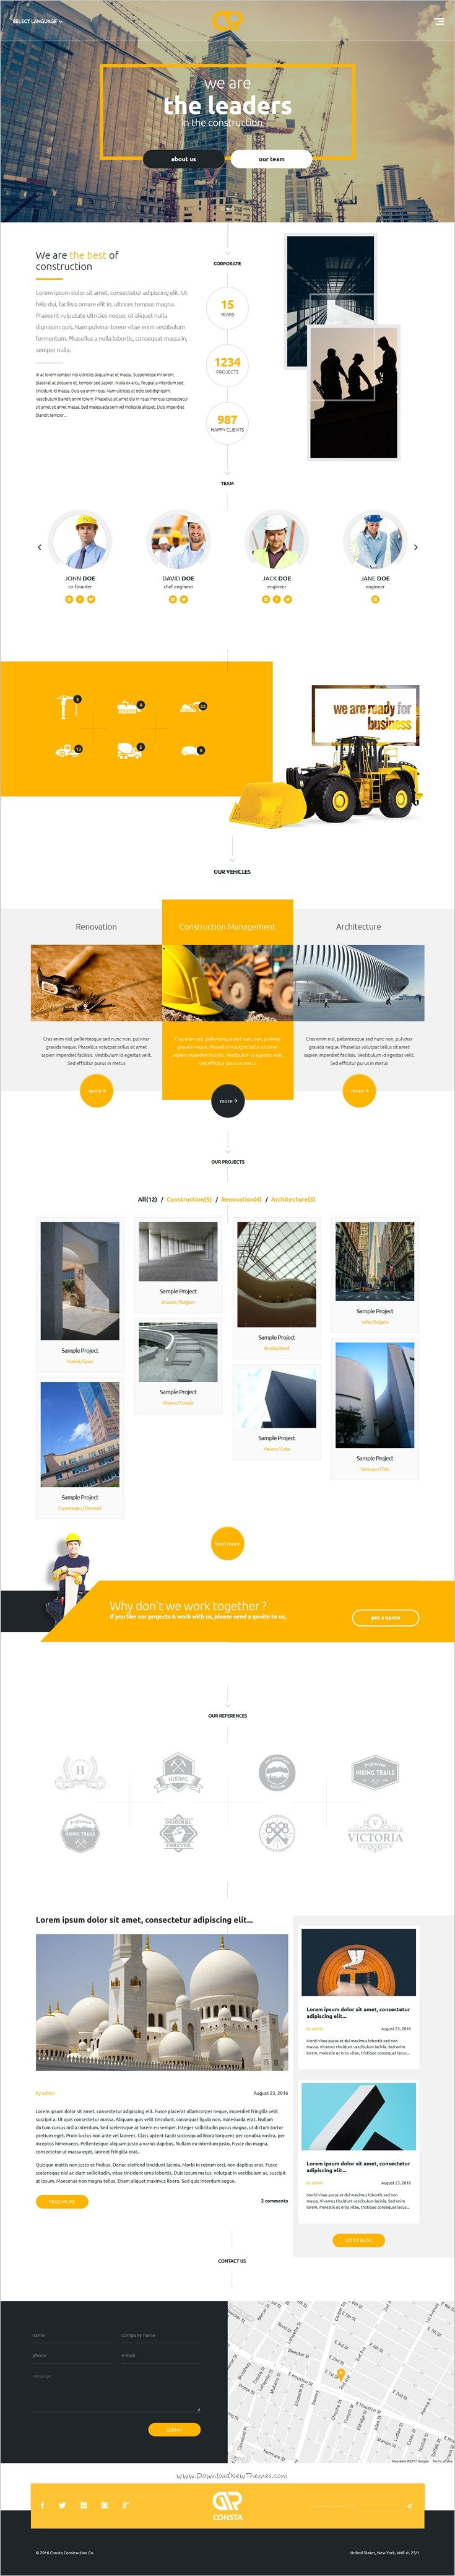 Consta is a wonderful one page responsive #HTML #bootstrap template for #Construction, #Architecture, Renovation, Building Services, Engineering and other construction related services website download now➩ https://themeforest.net/item/consta-one-page-construction-html-template/19163908?ref=Datasata